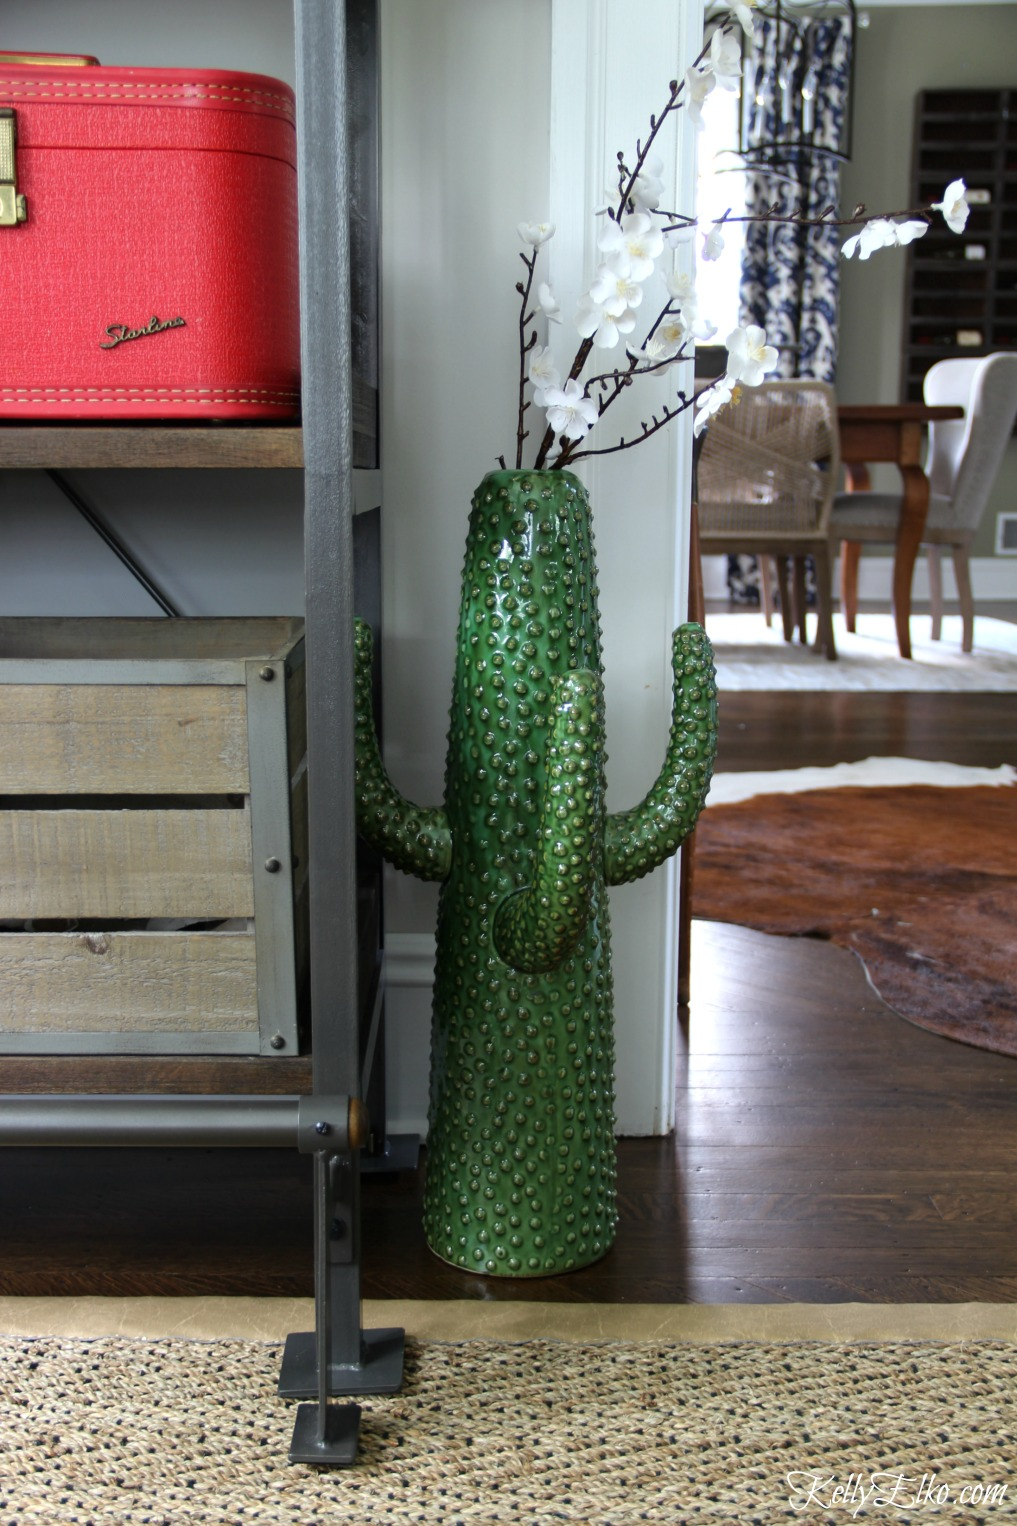 Love this whimsical cactus vase kellyelko.com